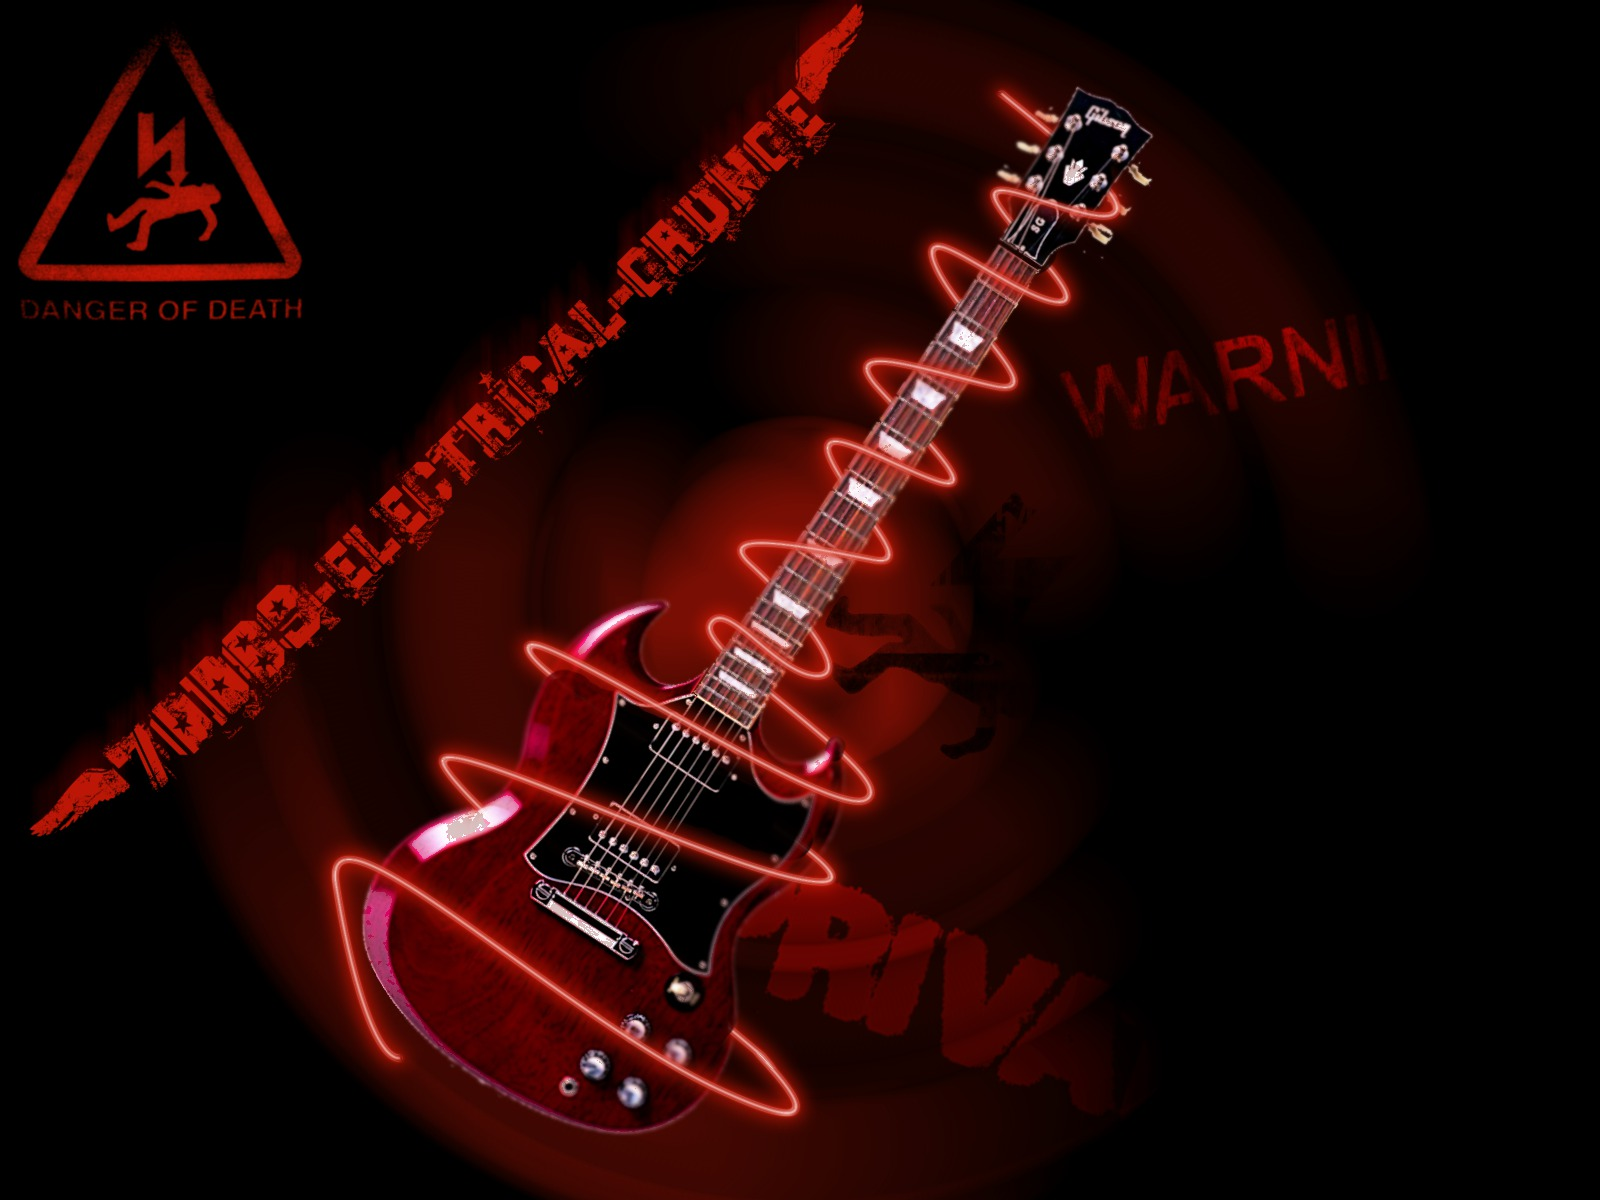 Guitar wallpaper and background image 1600x1200 id 211191 wallpaper abyss - Cool guitar wallpaper ...